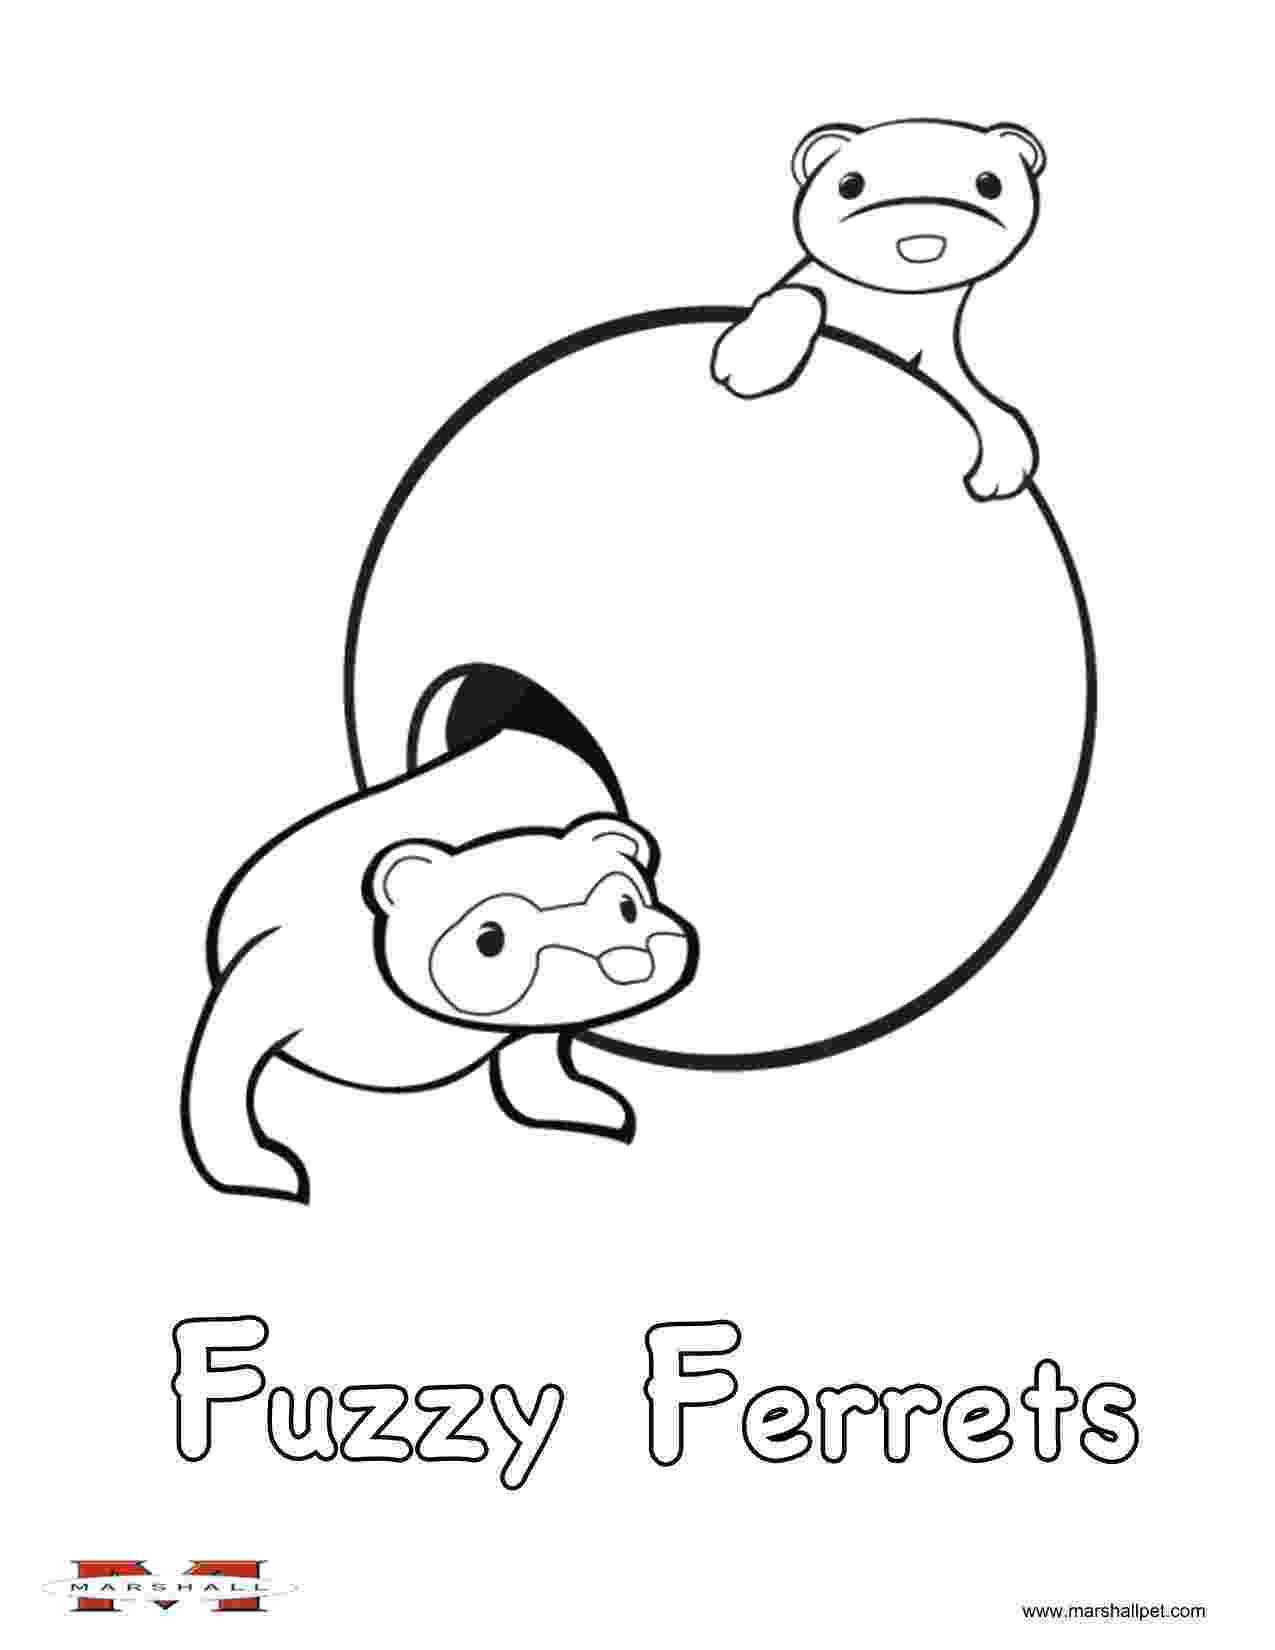 wizards of waverly place coloring pages wizards of waverly place coloring pages for kids pages place coloring waverly wizards of